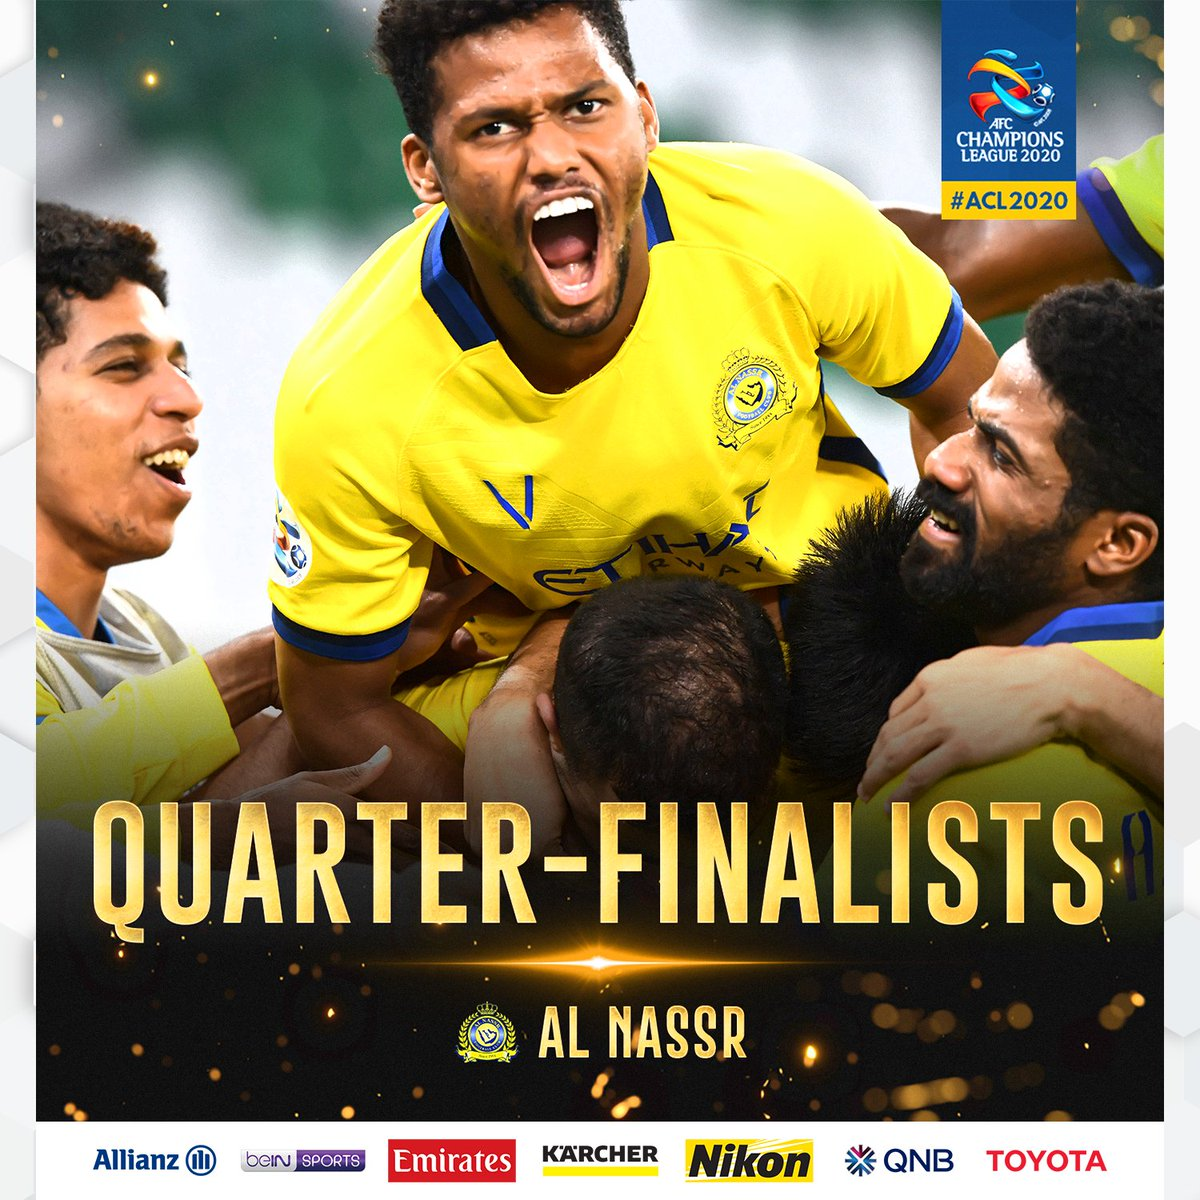 QUARTER-FINALISTS  🎉 Congratulations 🇸🇦 Al Nassr FC!  🏆 #ACL2020 https://t.co/9RL4r3xXaI